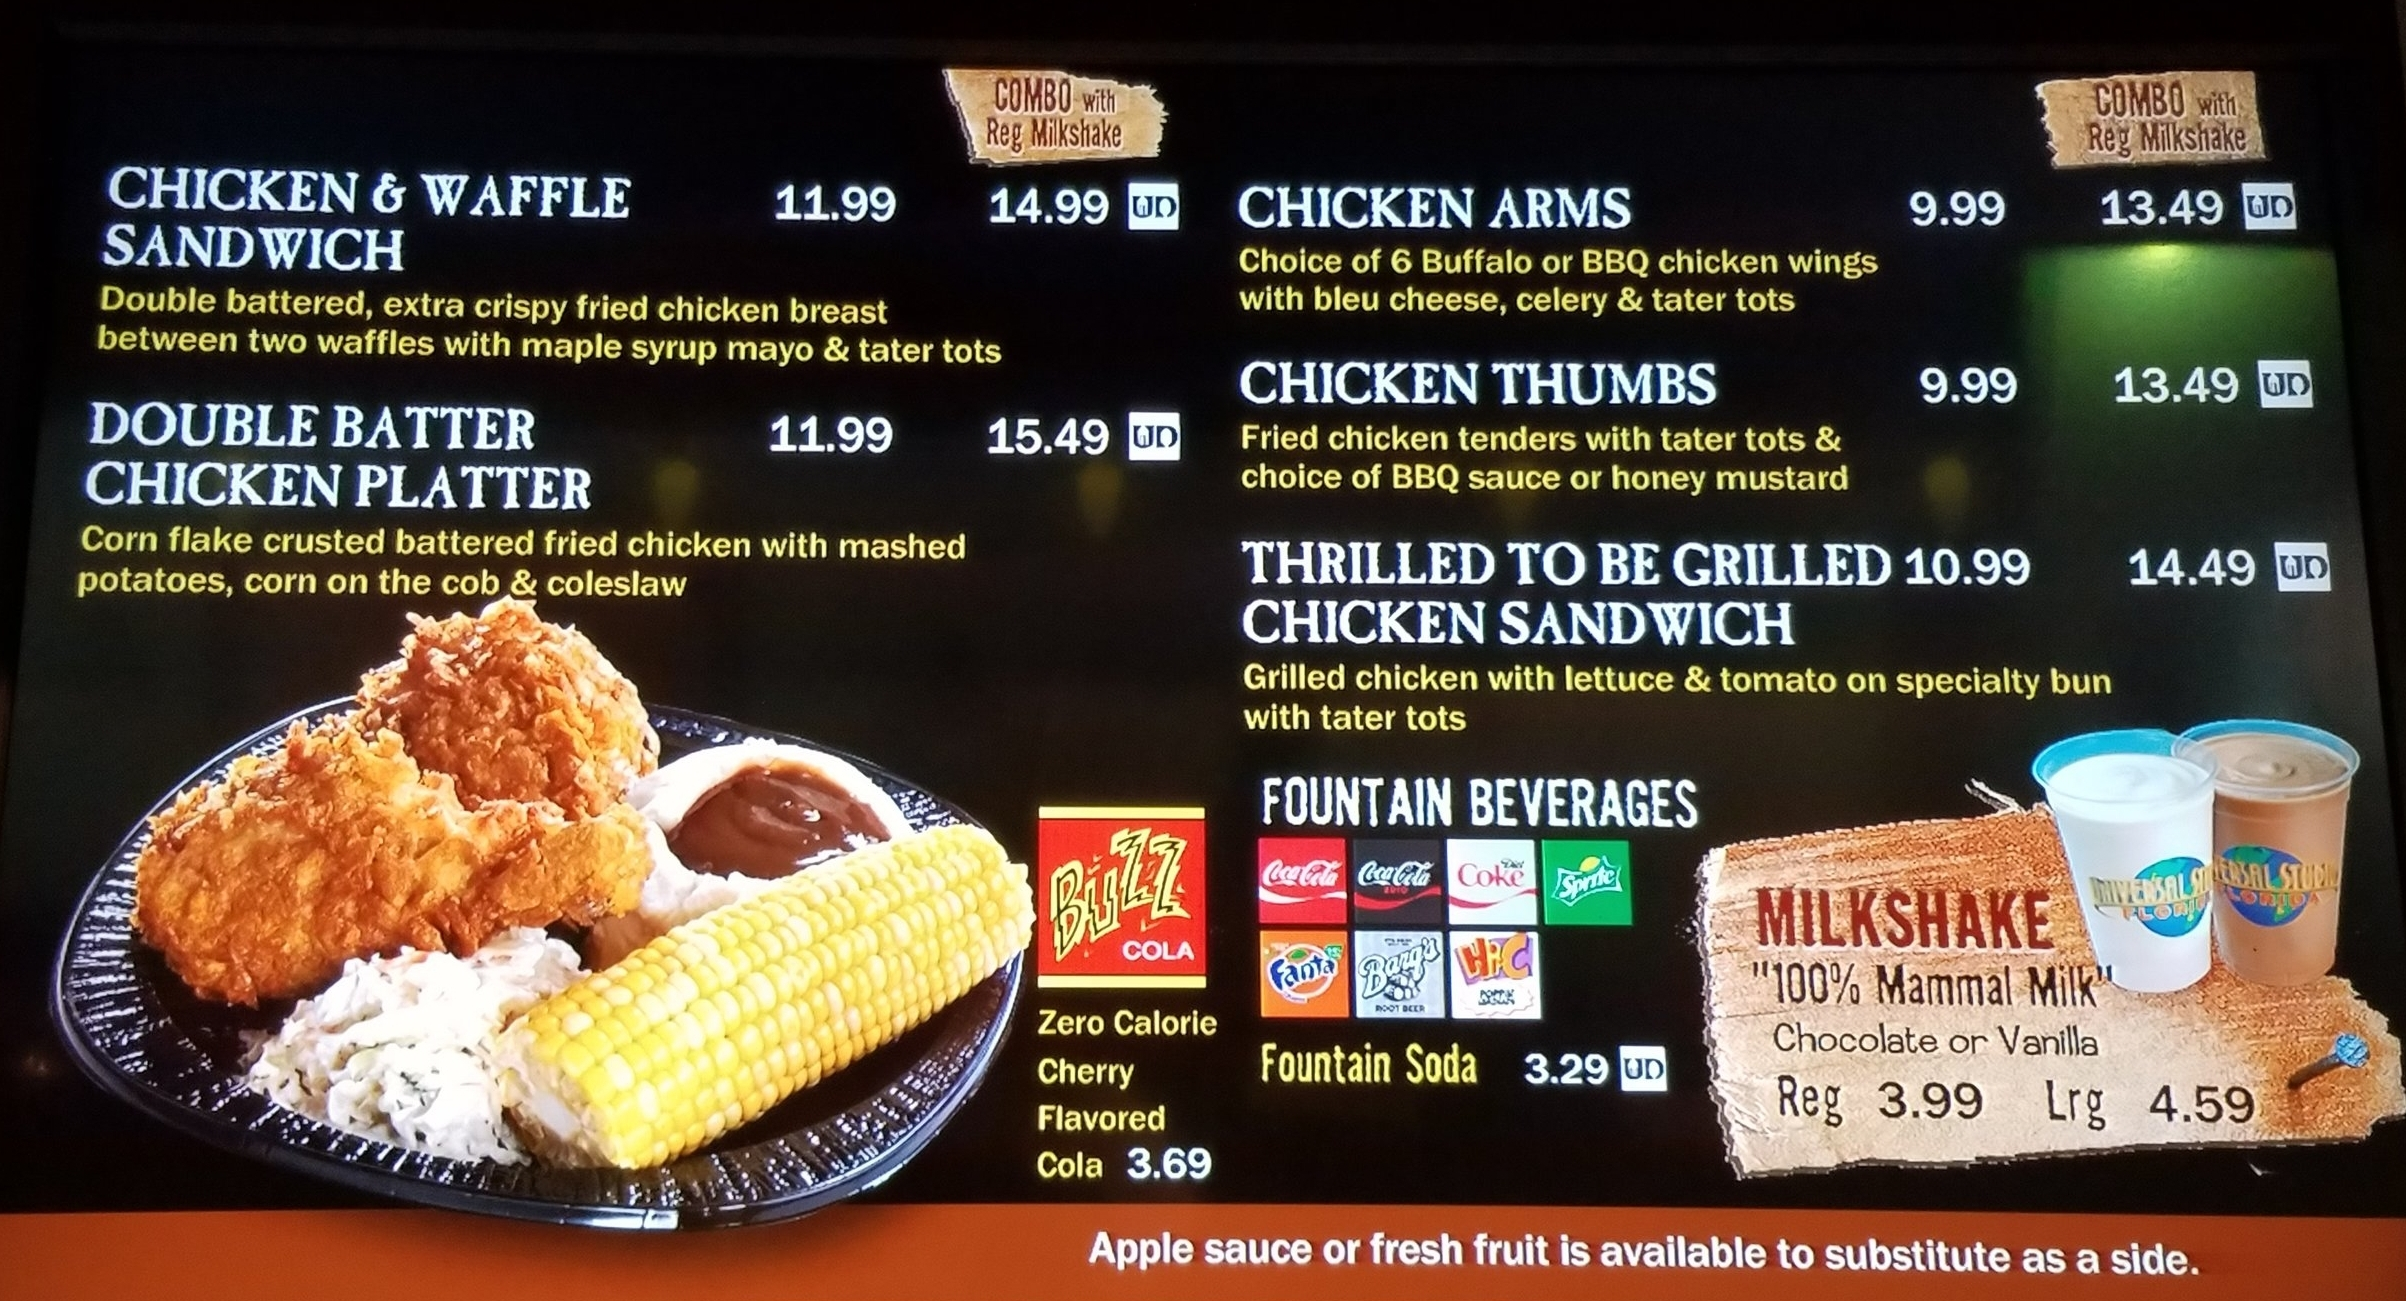 Cletus' Chicken Shack menu with prices.